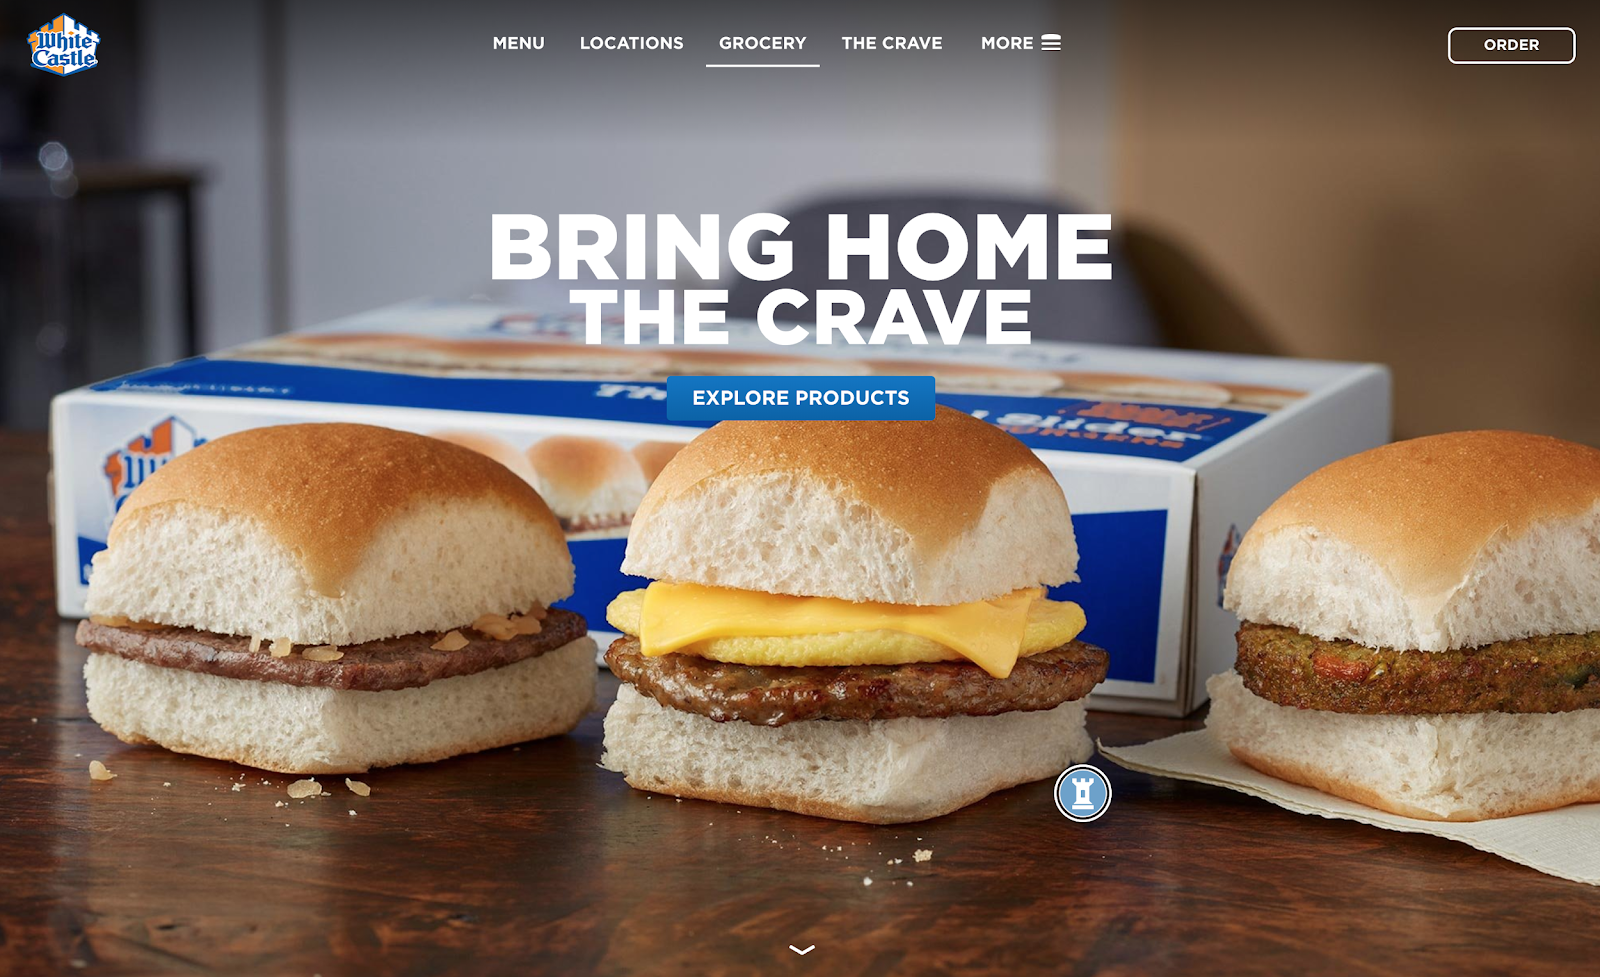 bring home the crave image